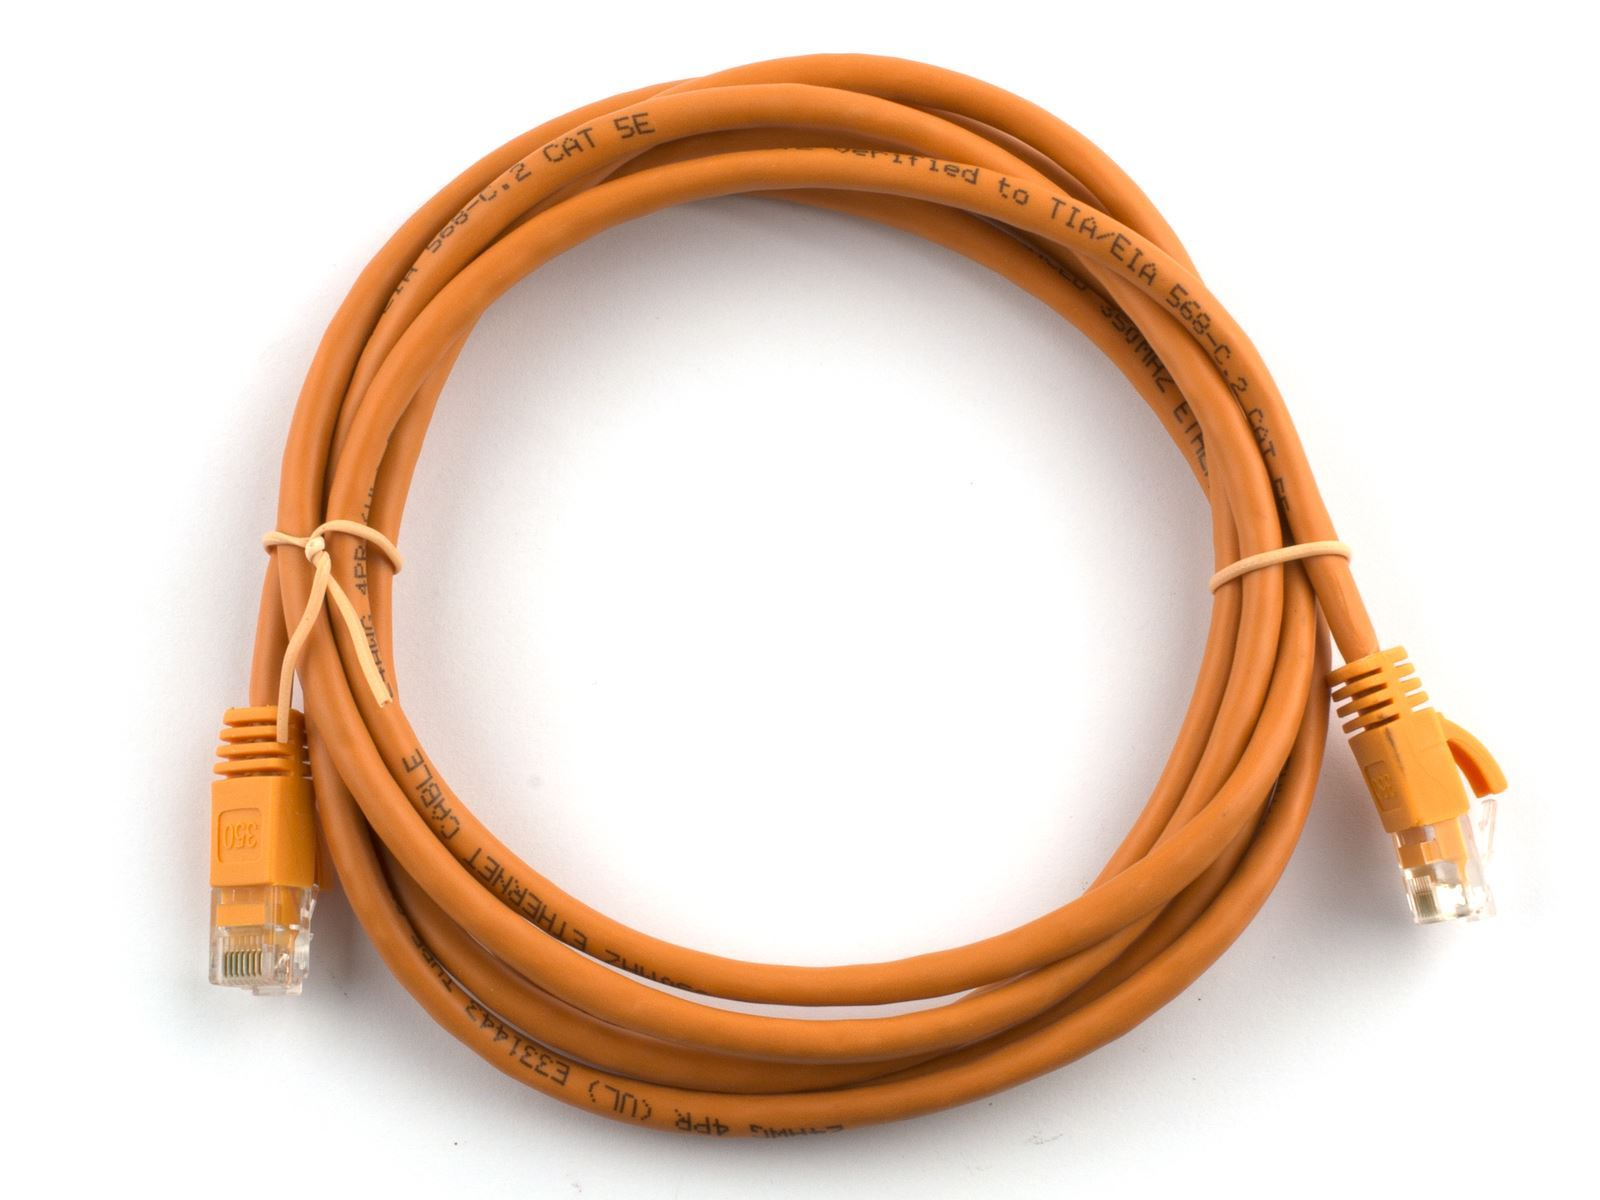 Networx 5 Ft Booted Cat6 Network Patch Cable Orange Rj45 To 550mhz Standards For Switch Router Modem Picture Of